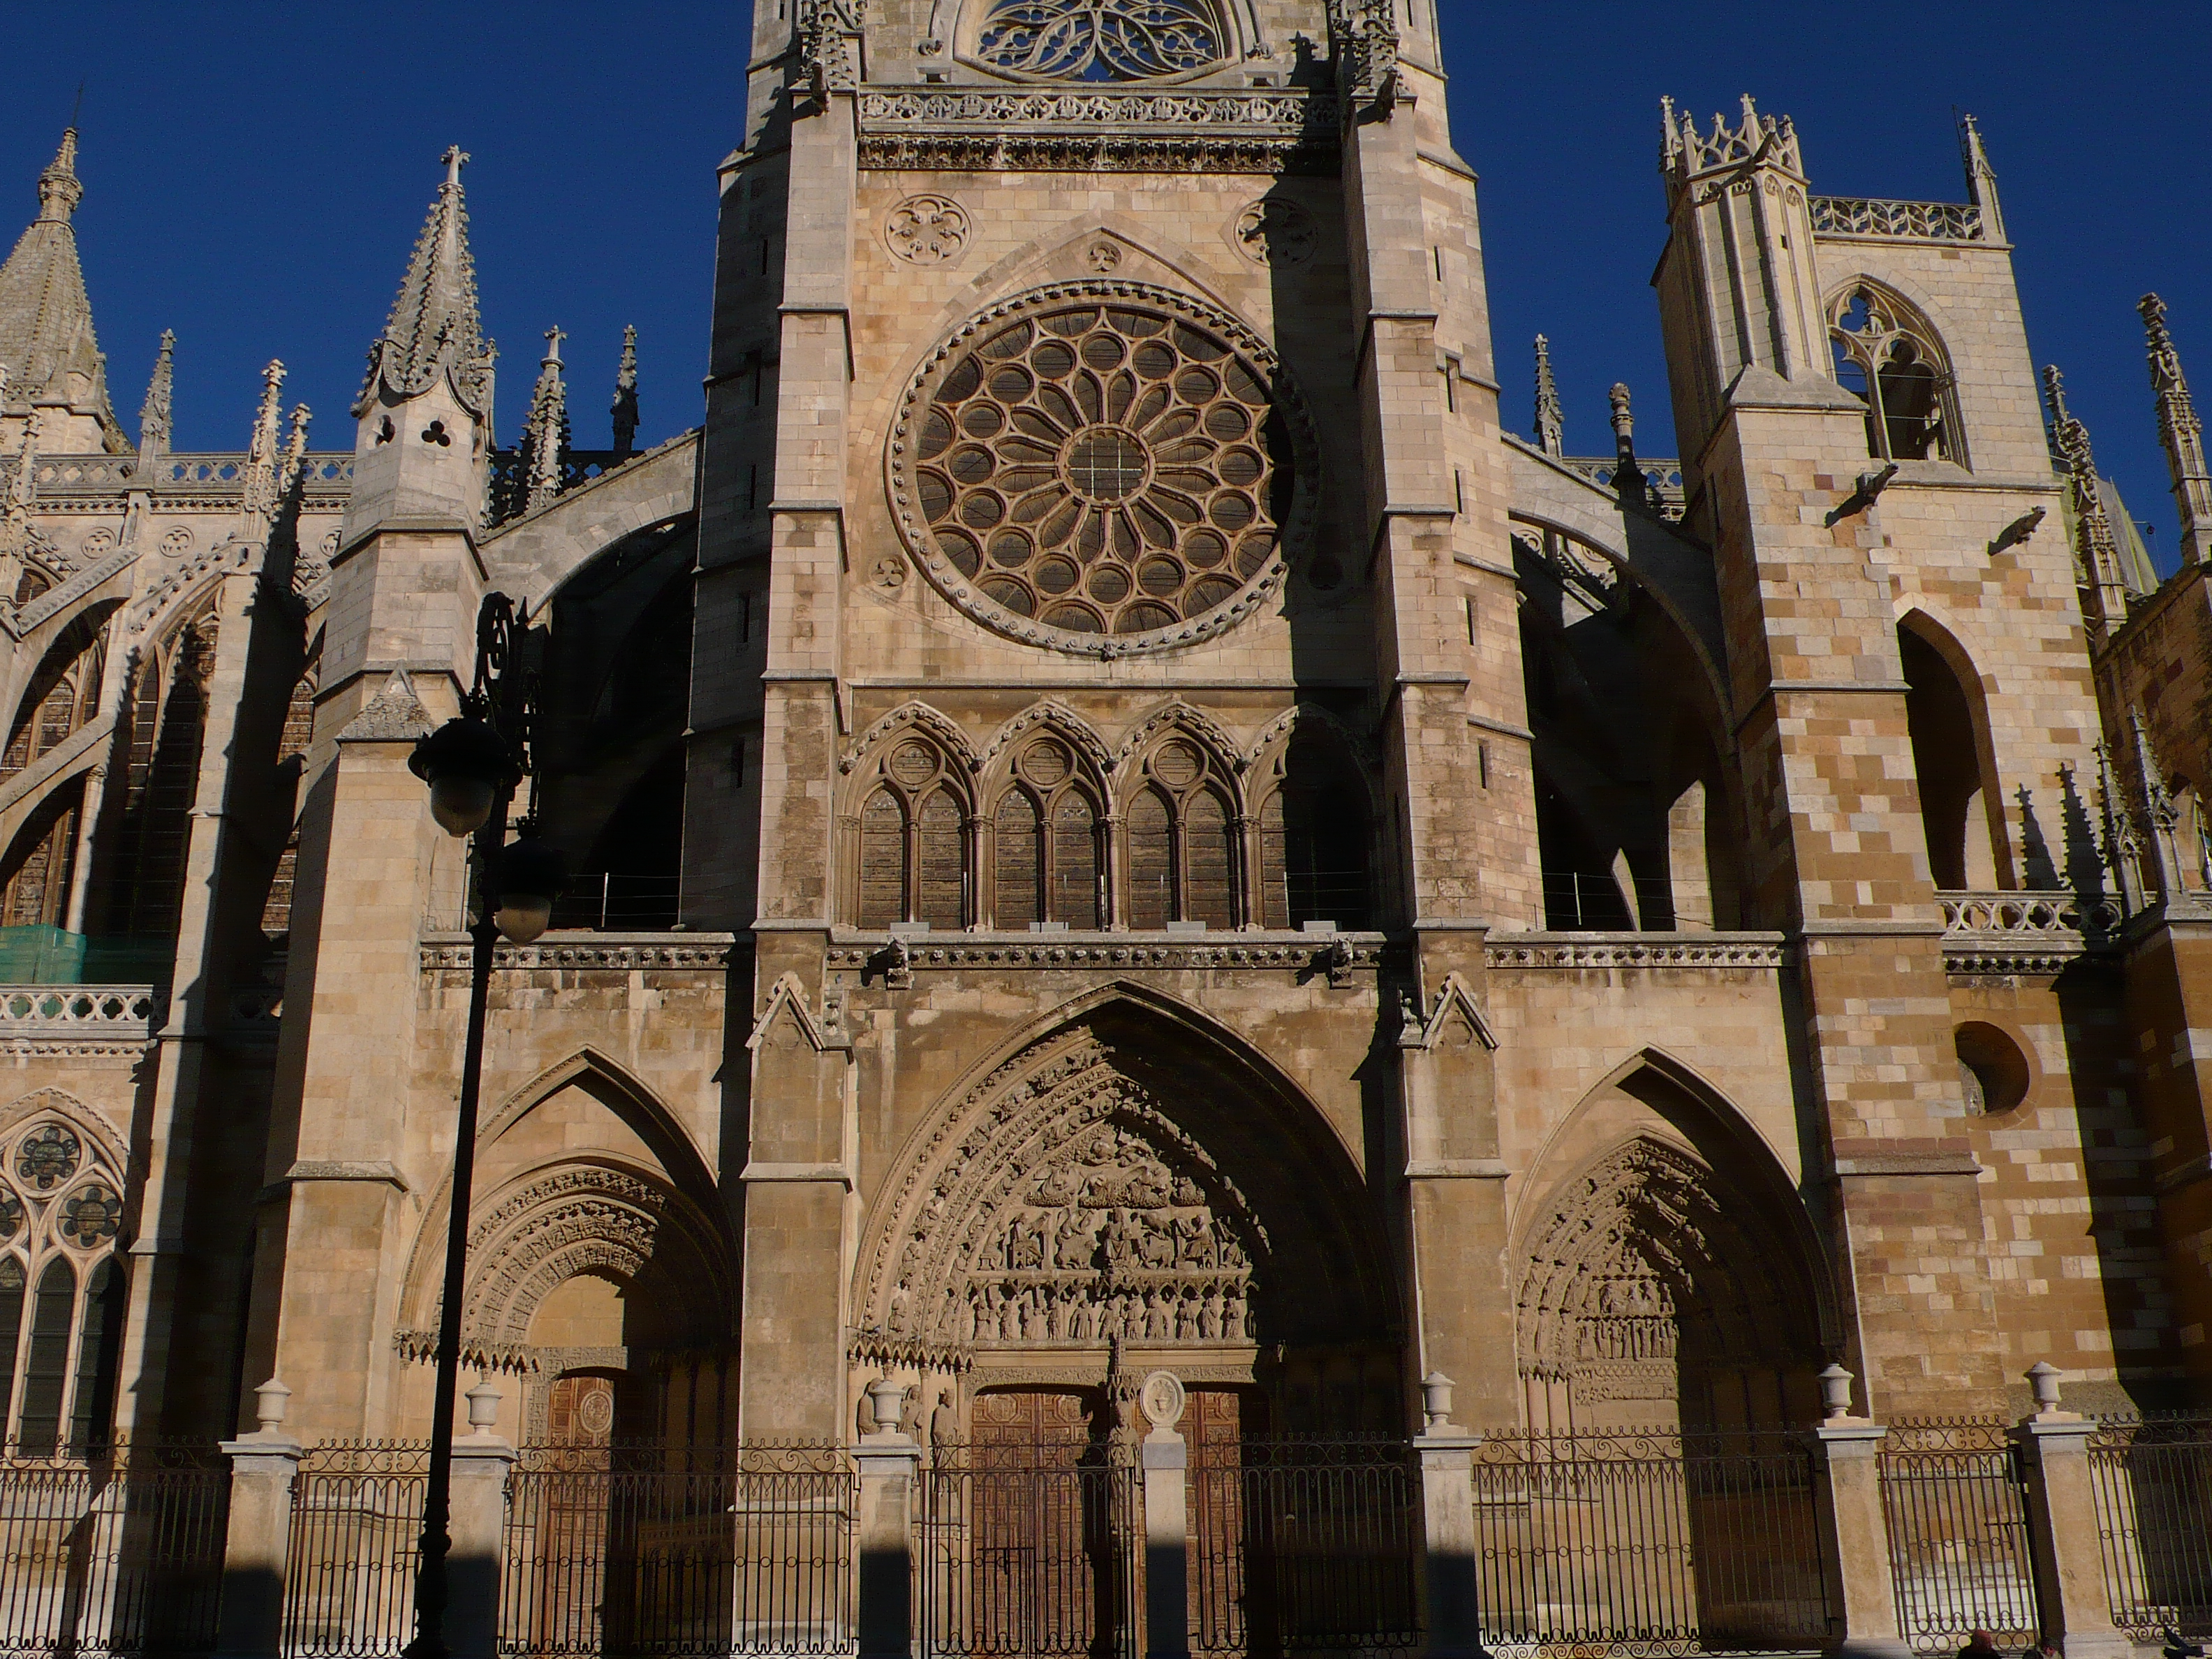 File:Catedral de León. Fachada meridional.jpg - Wikimedia Commons